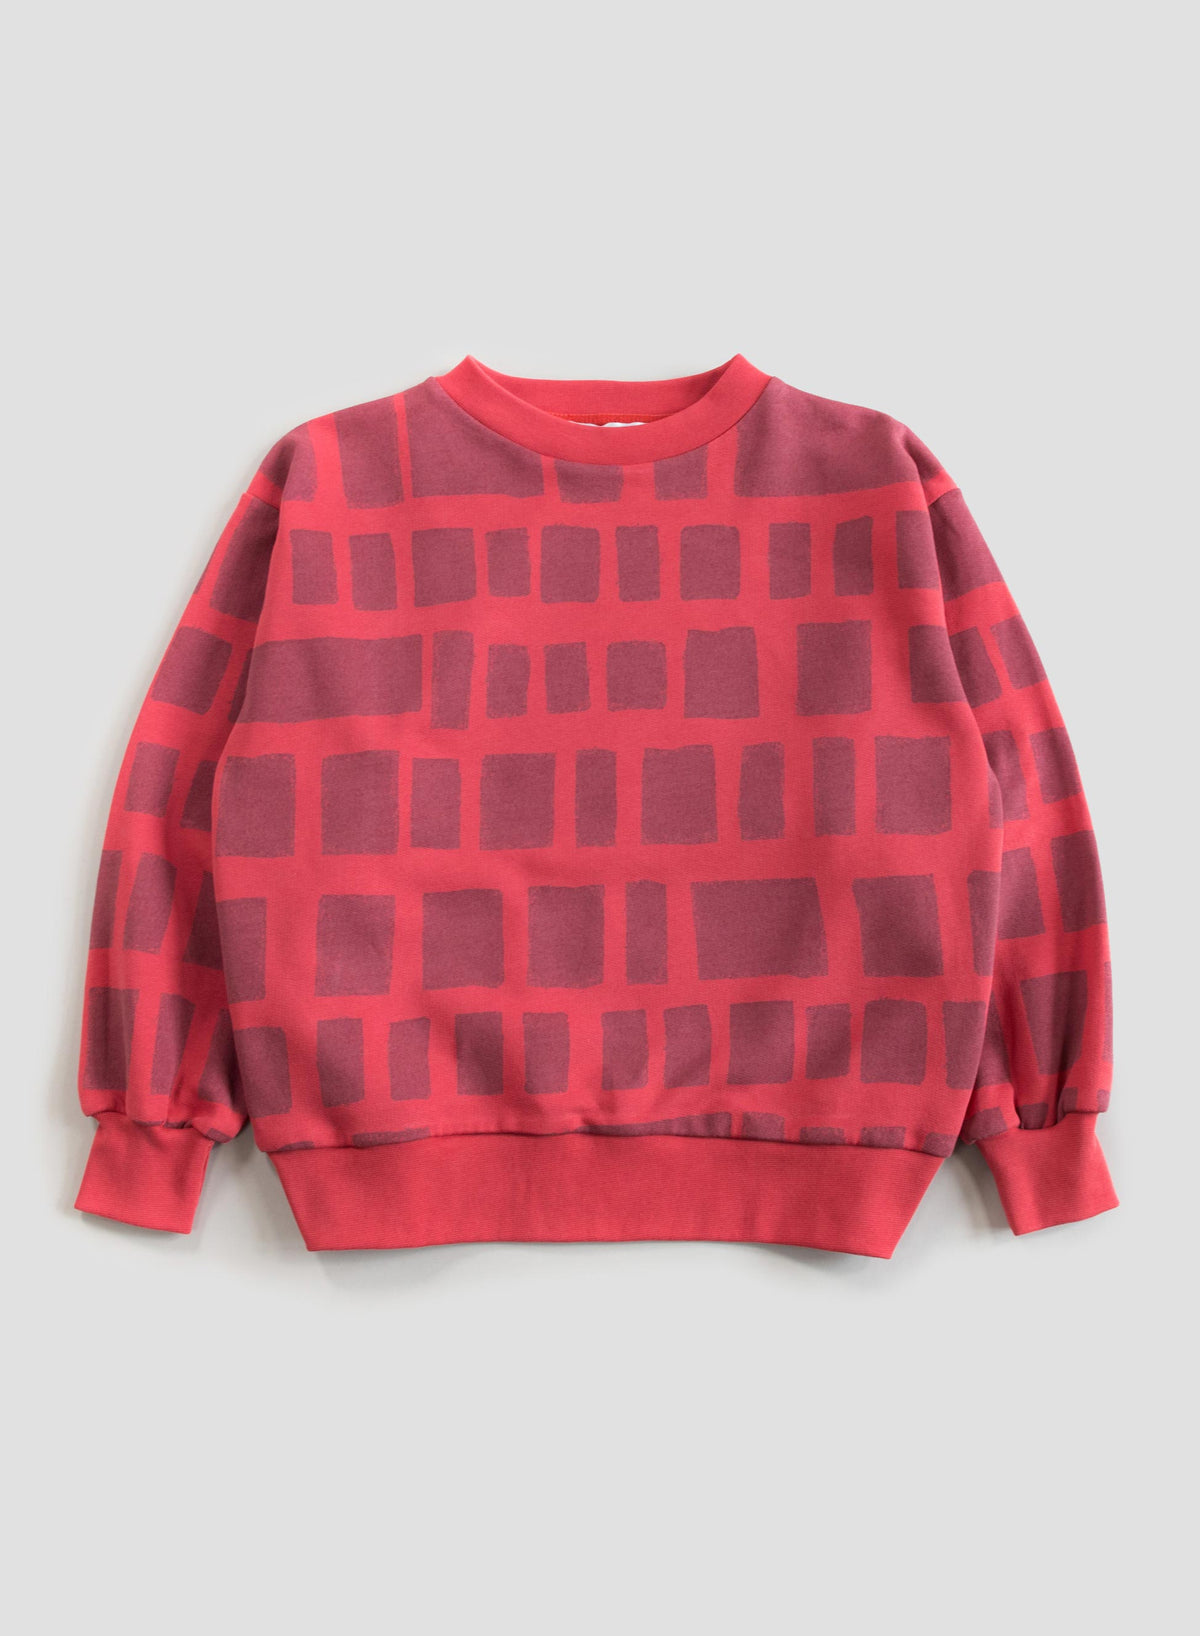 Faded Red Balloon Sweatshirt